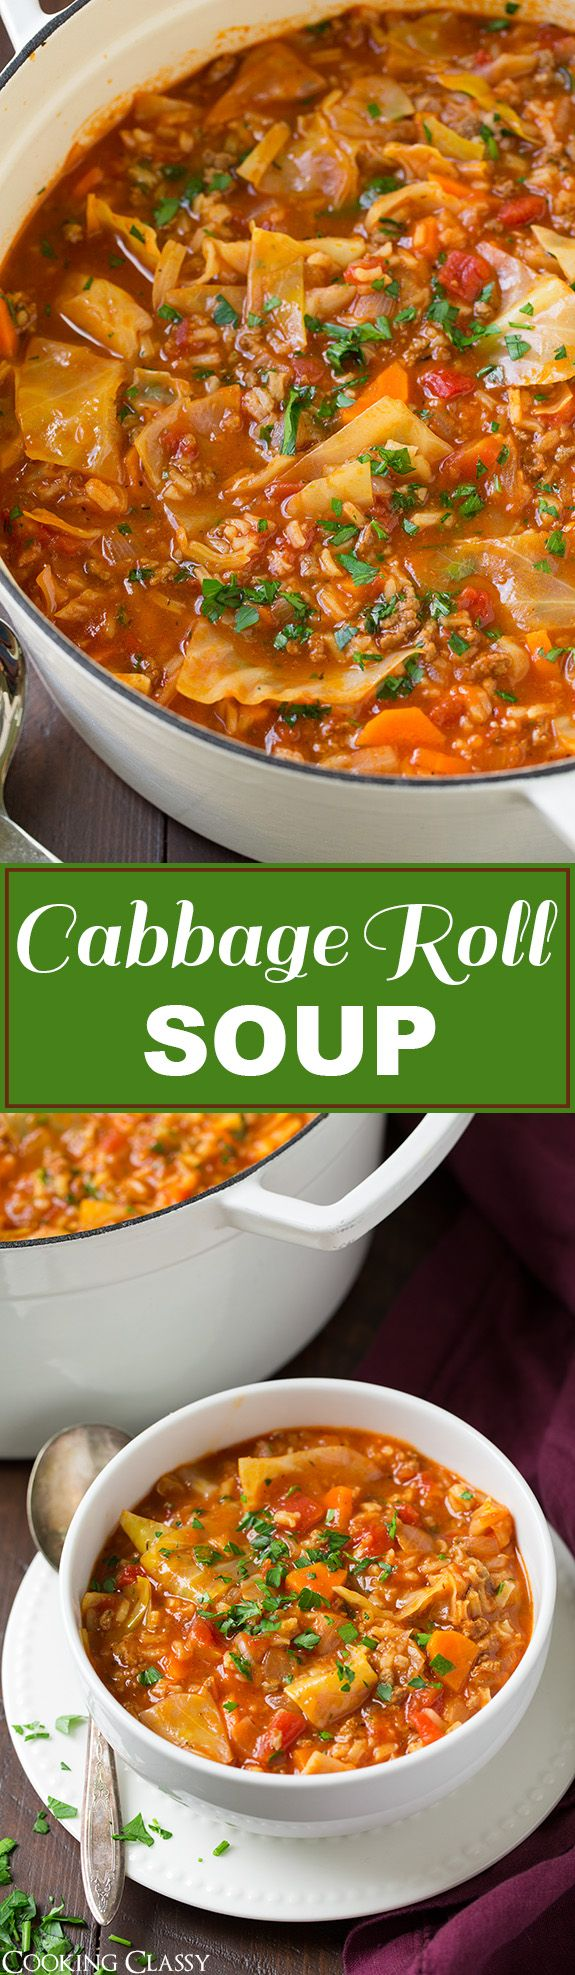 Cabbage Roll Soup - so much easier than stuffing cabbage rolls! This soup is so hearty and filling and totally delicious! Will definitely make this again this fall!